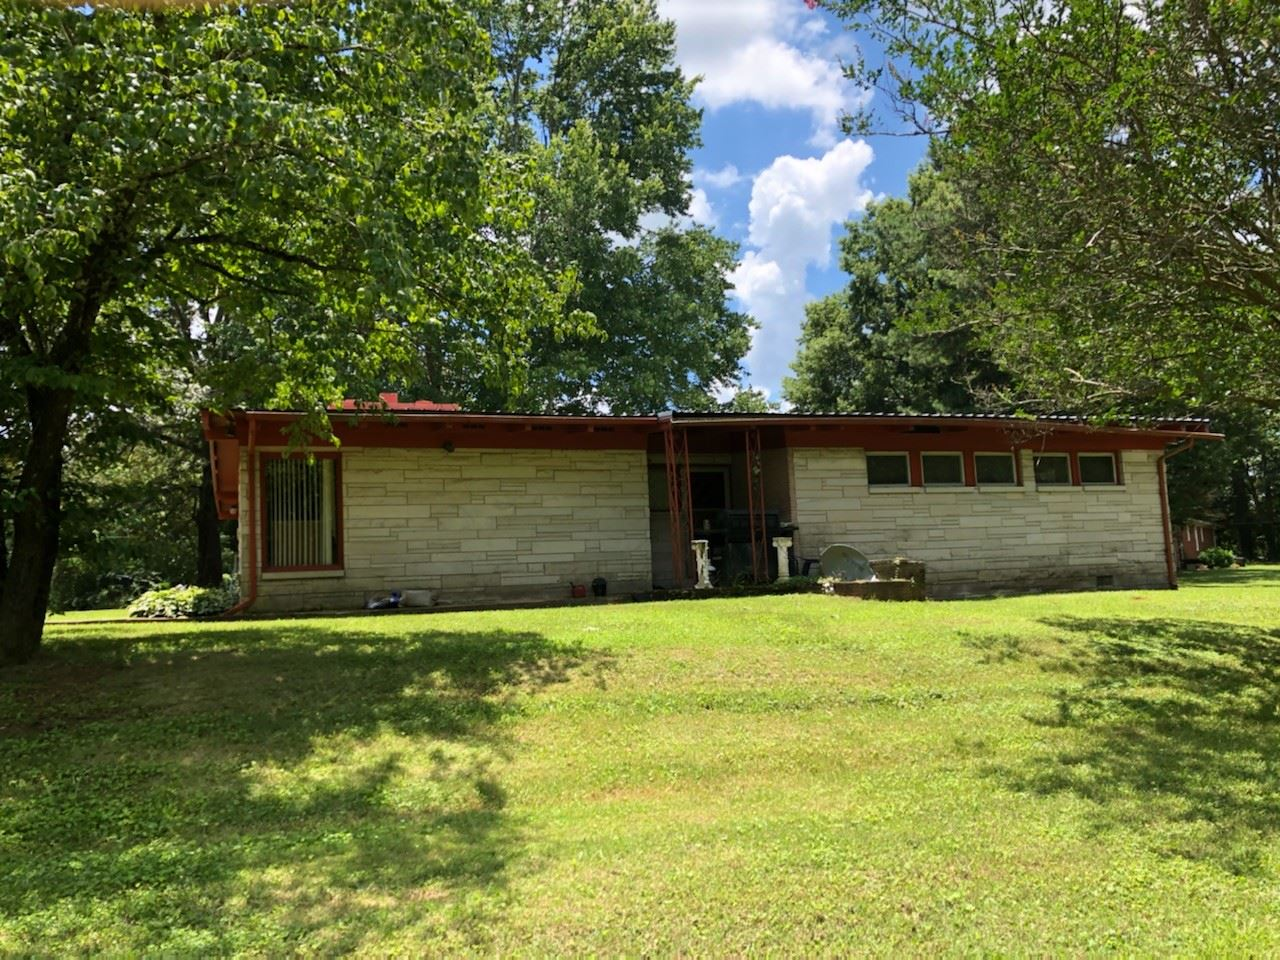 Photo of 401 Kennedy Rd, Saint Joseph, TN 38481 (MLS # 2169304)